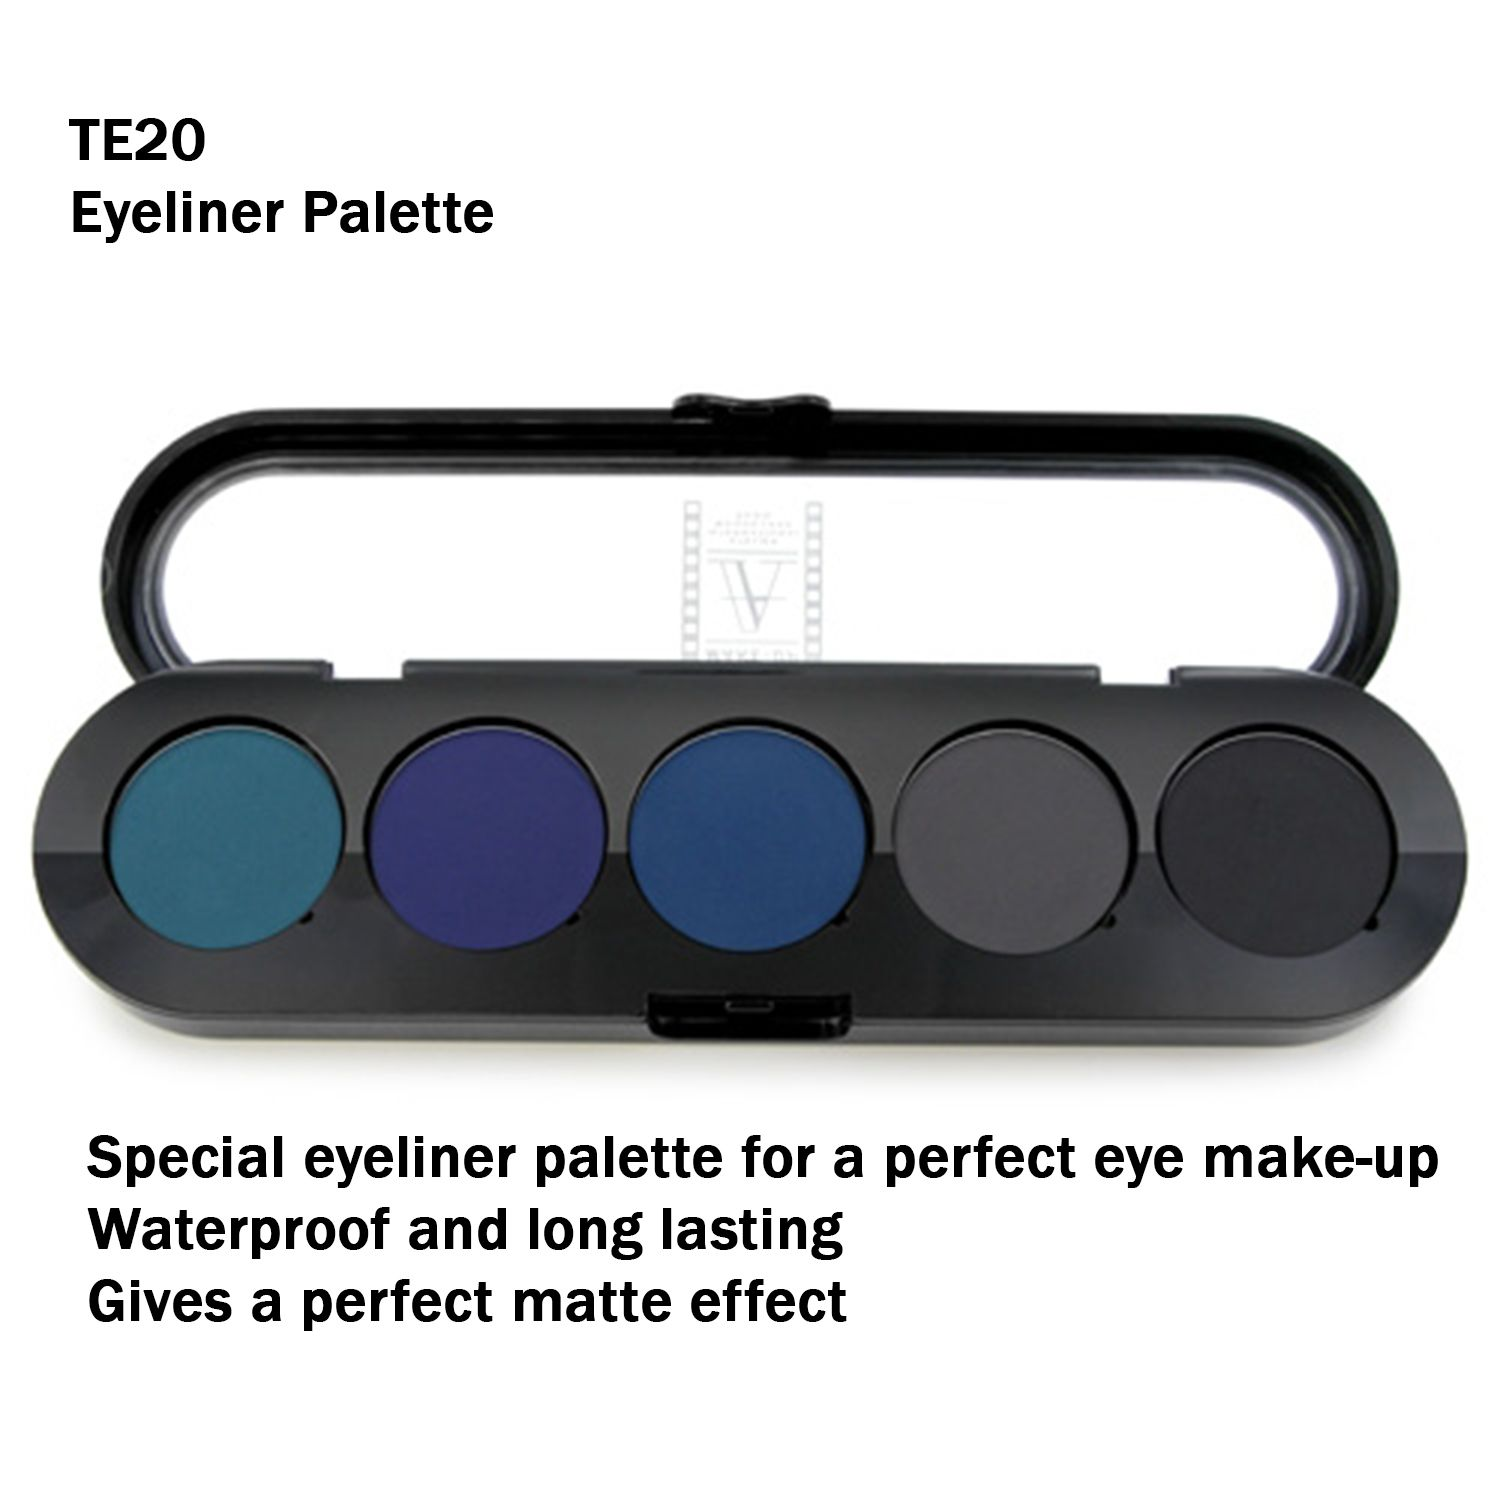 Different shades of eyeliner that gives matte effect. Easy